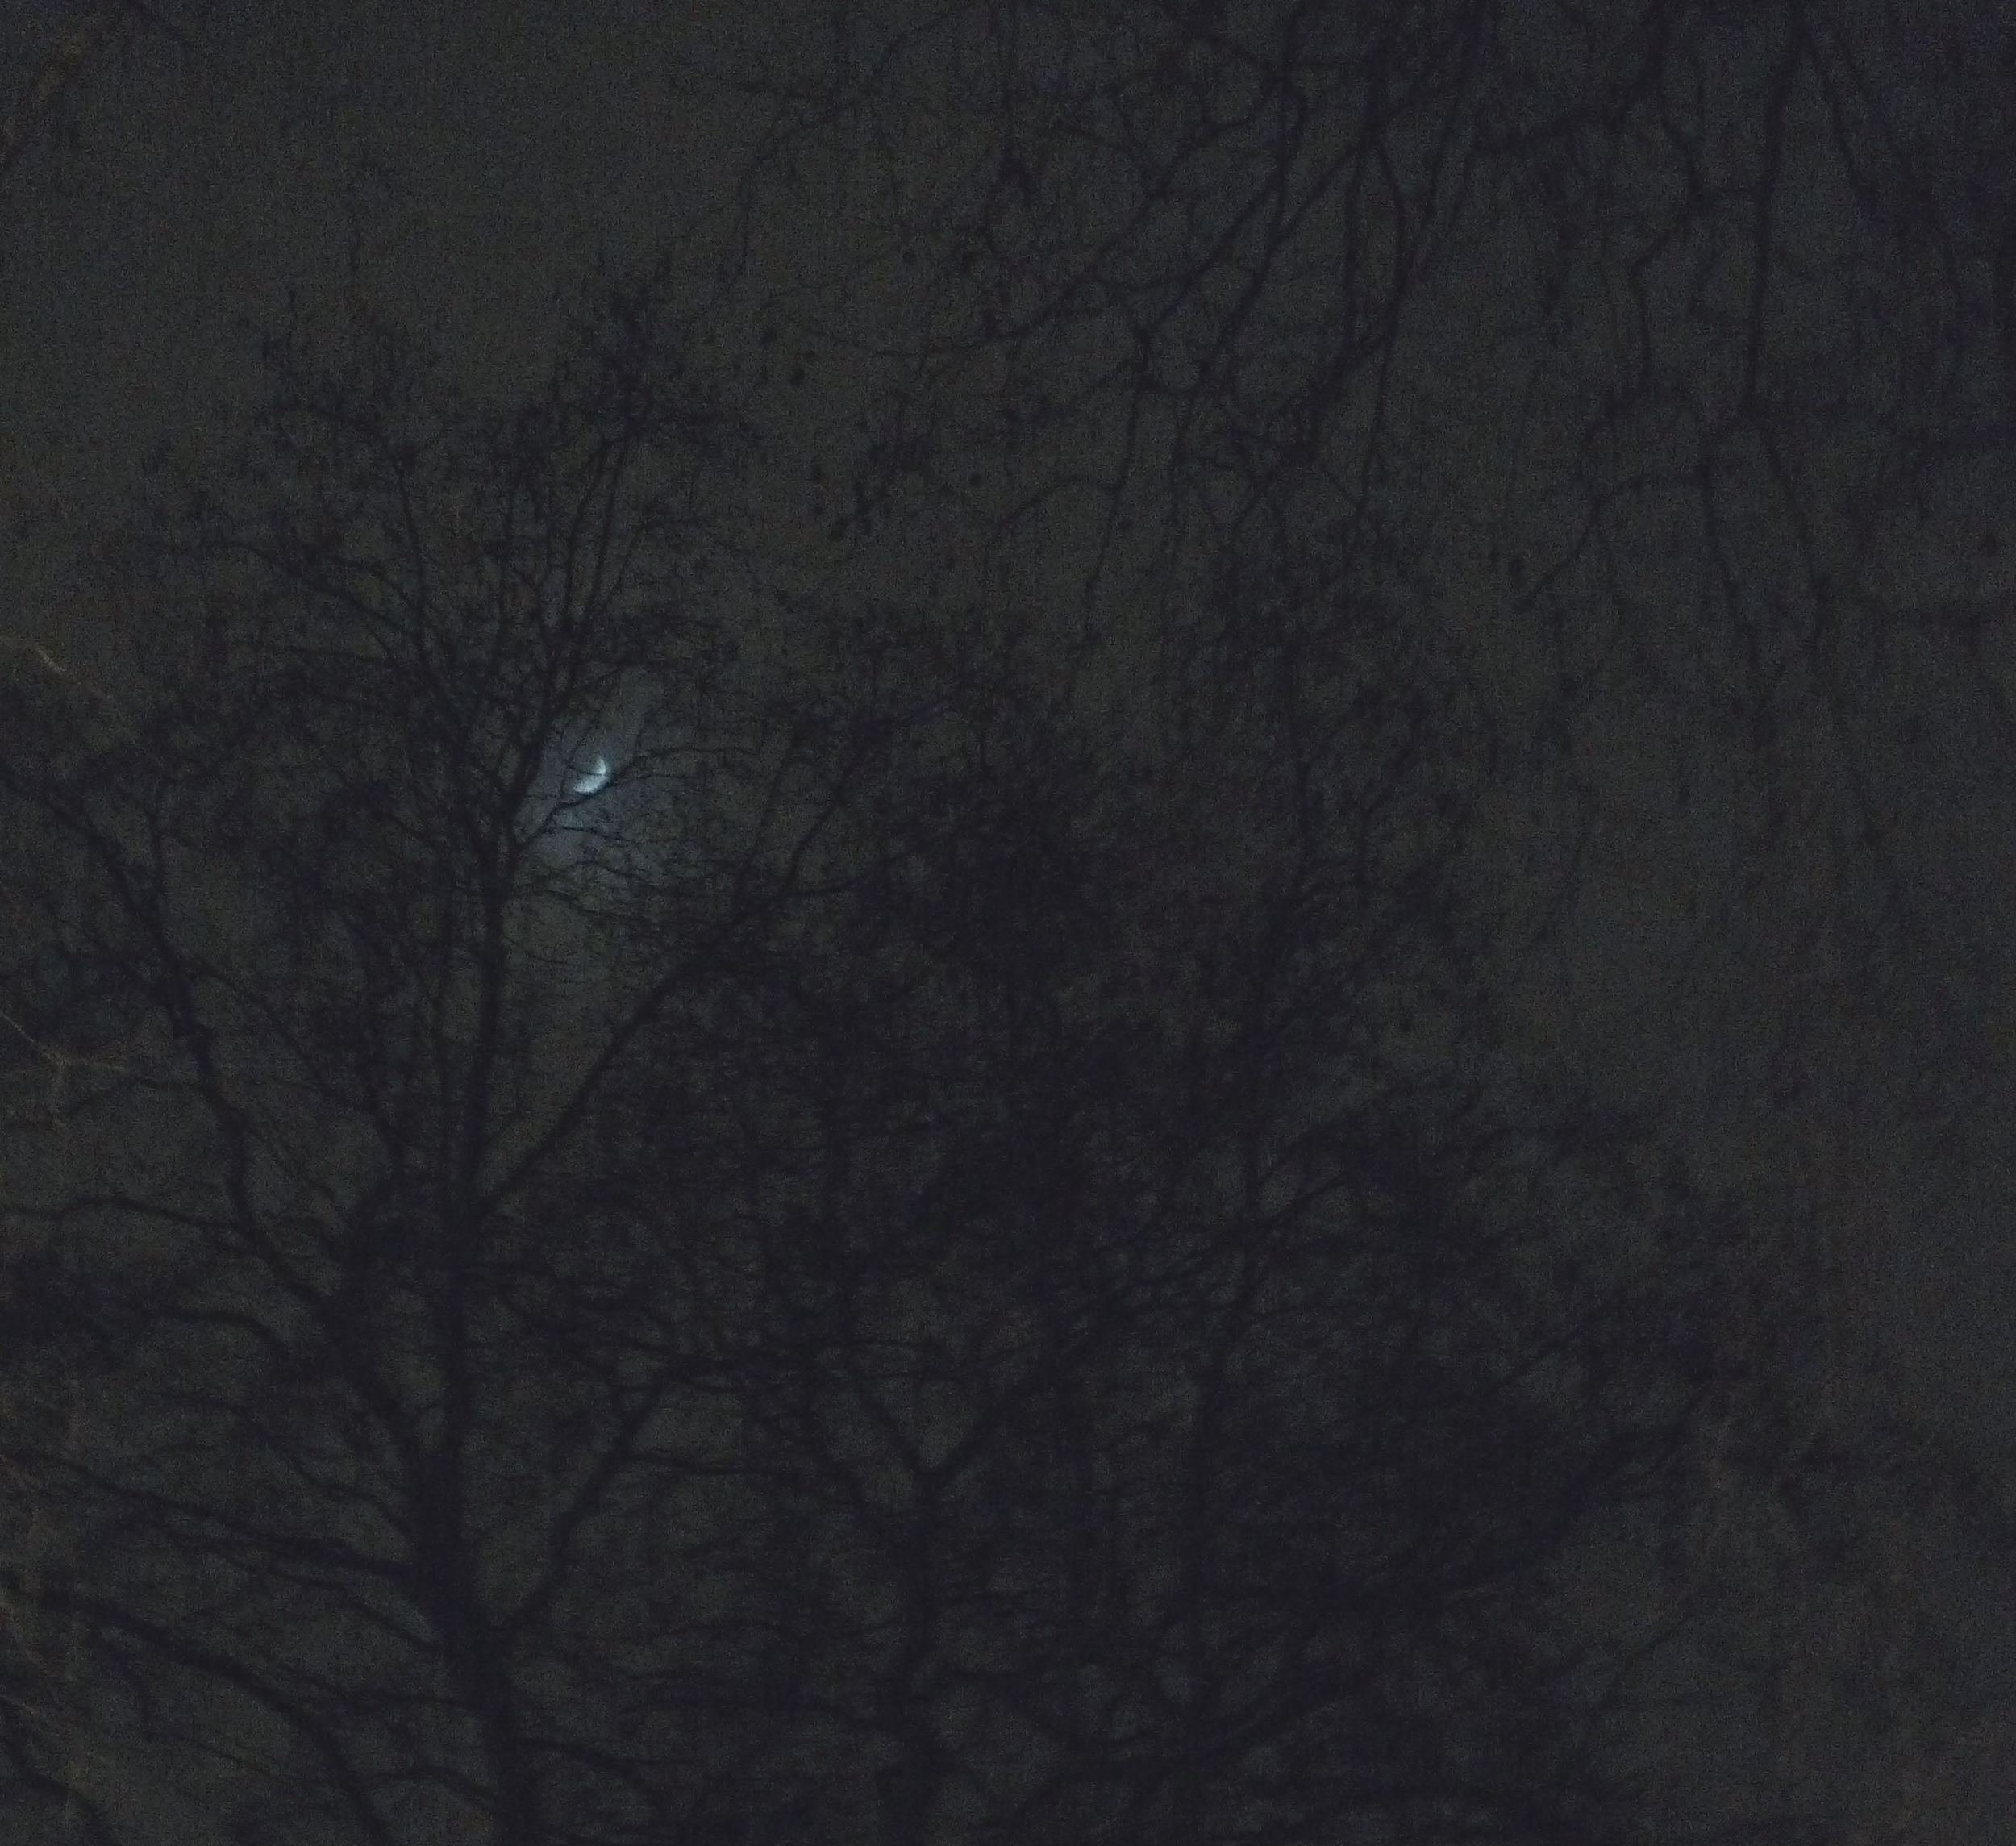 MOON THROUGH THE TREES GROSVENOR SQUARE LONDON